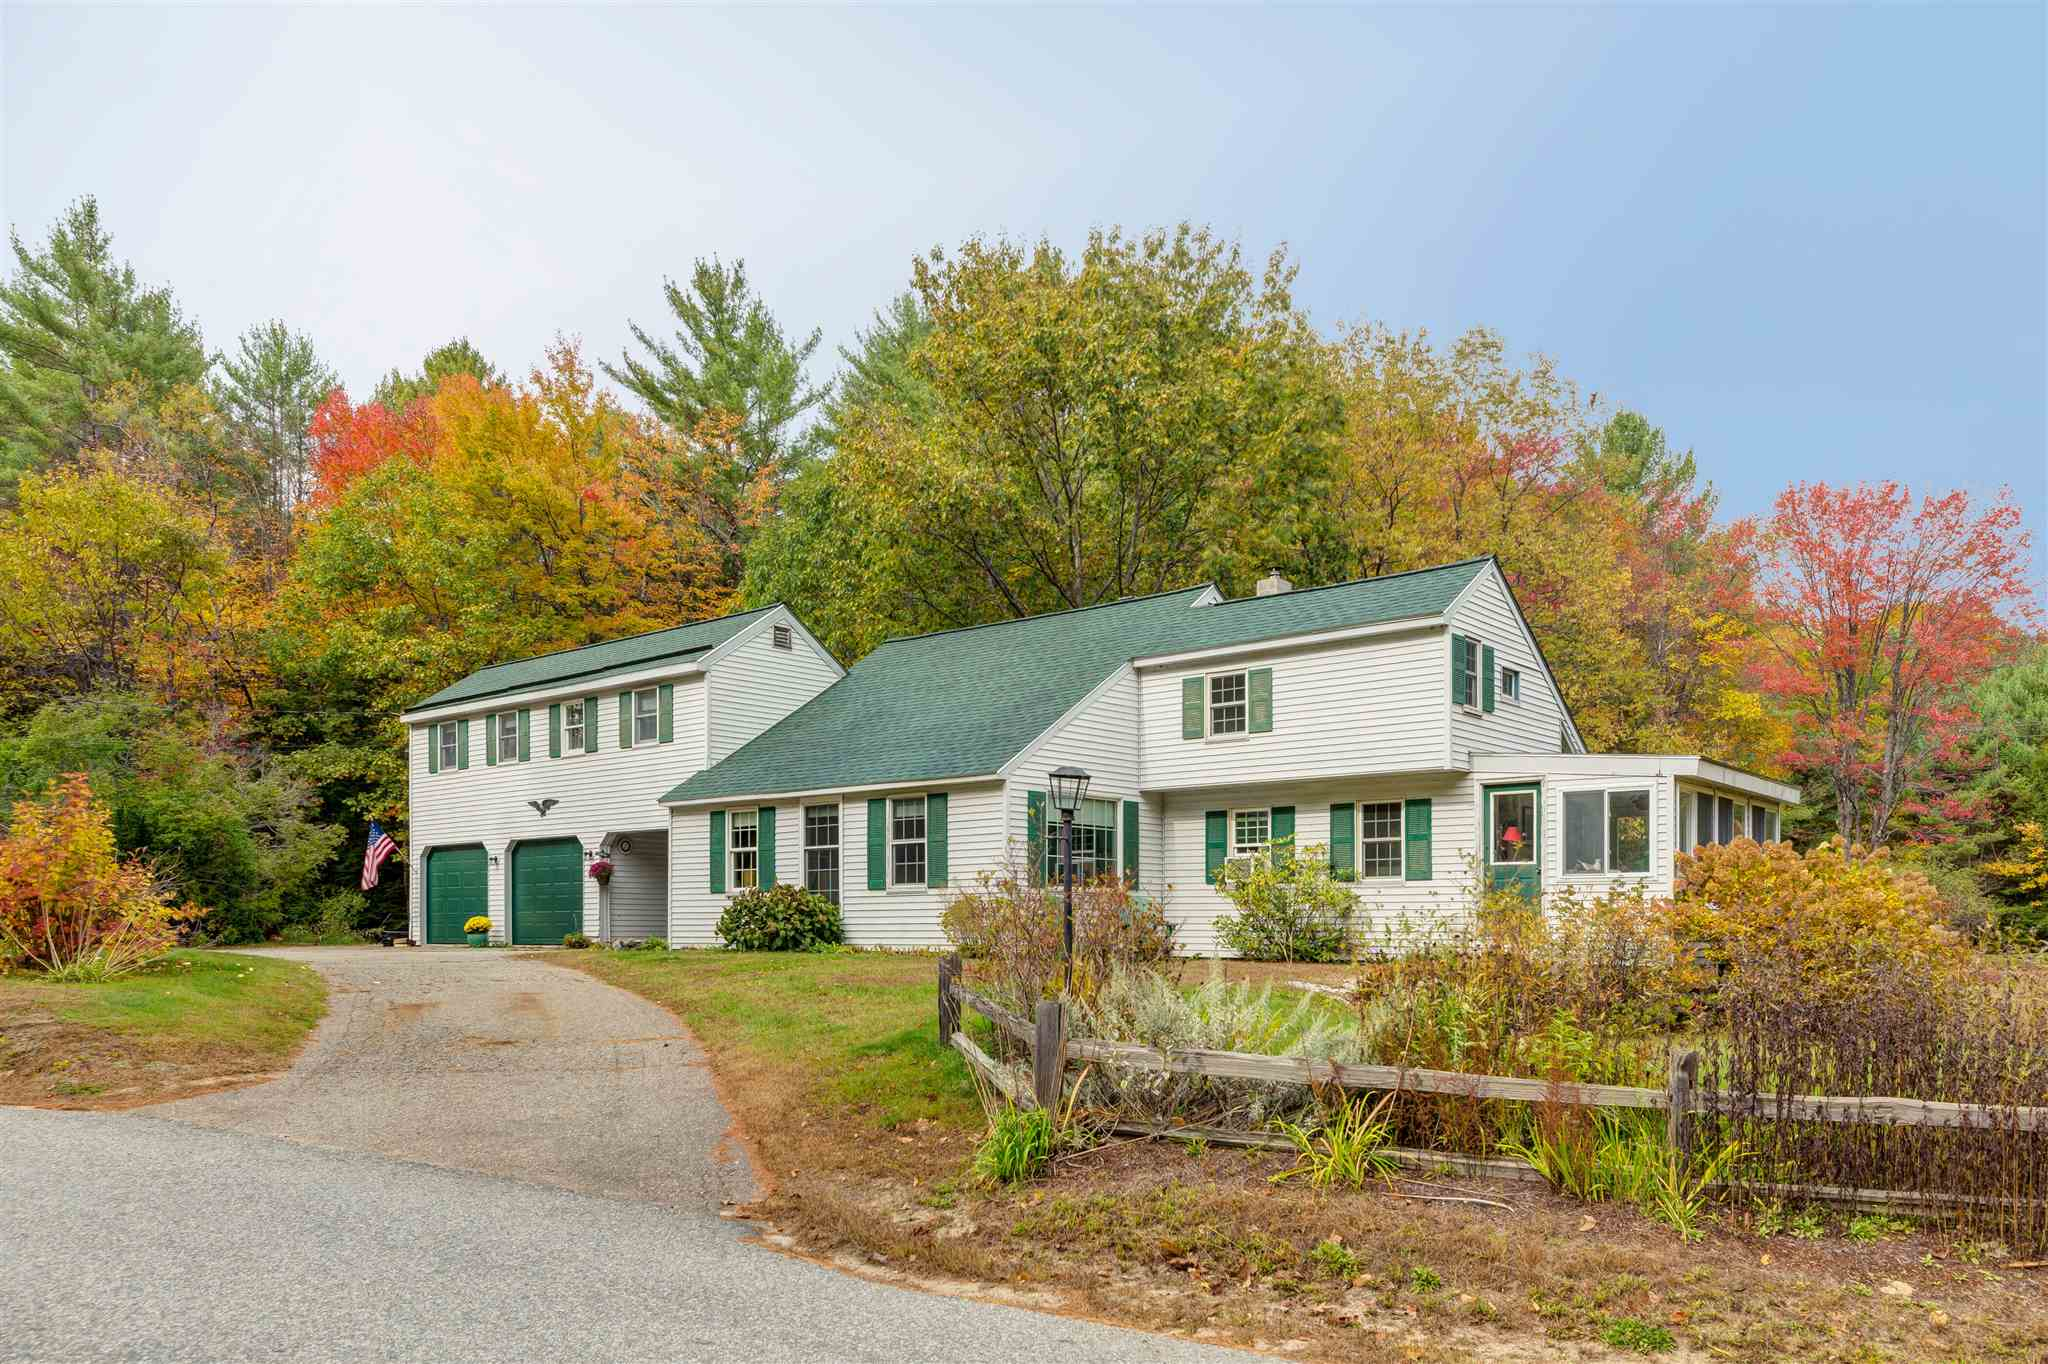 MLS 4804217: 42 Cross Hill Road, Wilmot NH